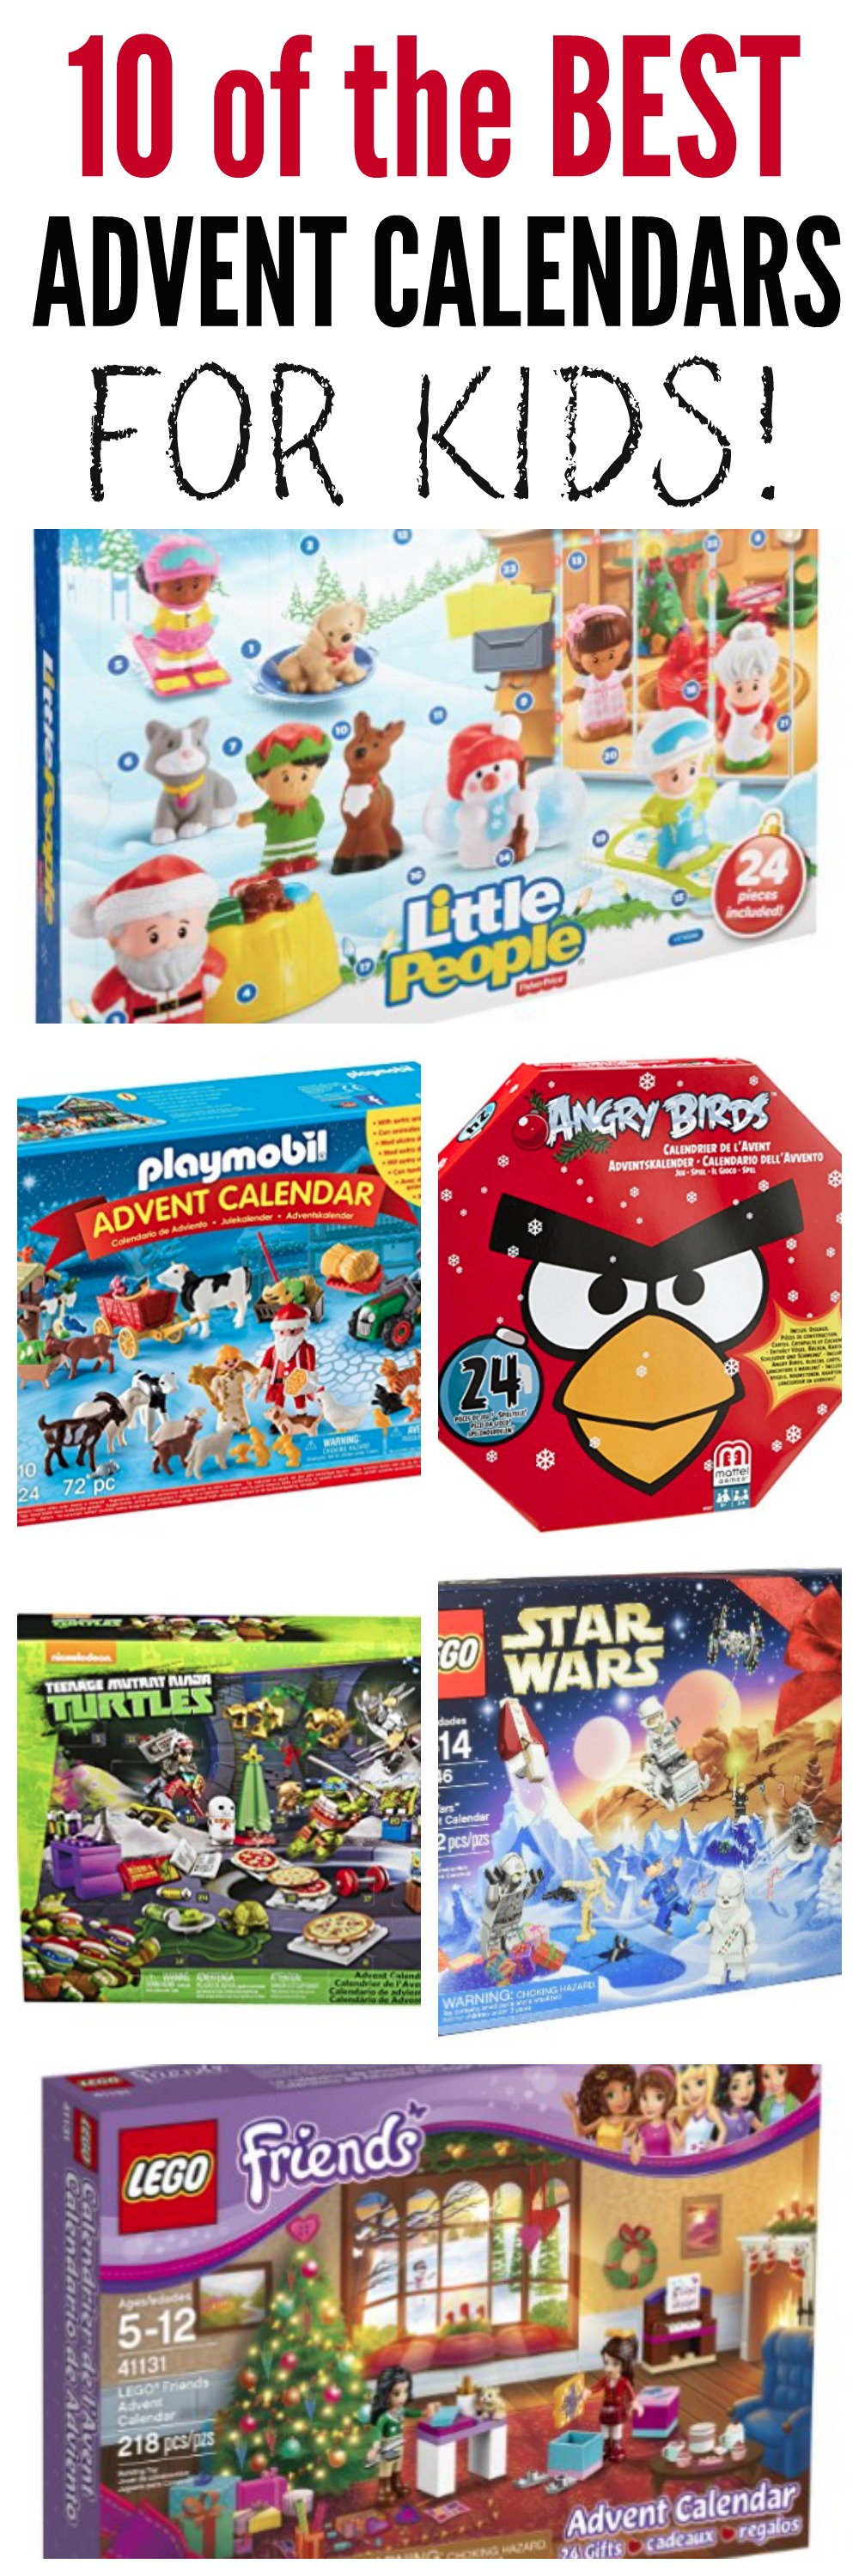 10-of-the-best-advent-calendars-for-kids